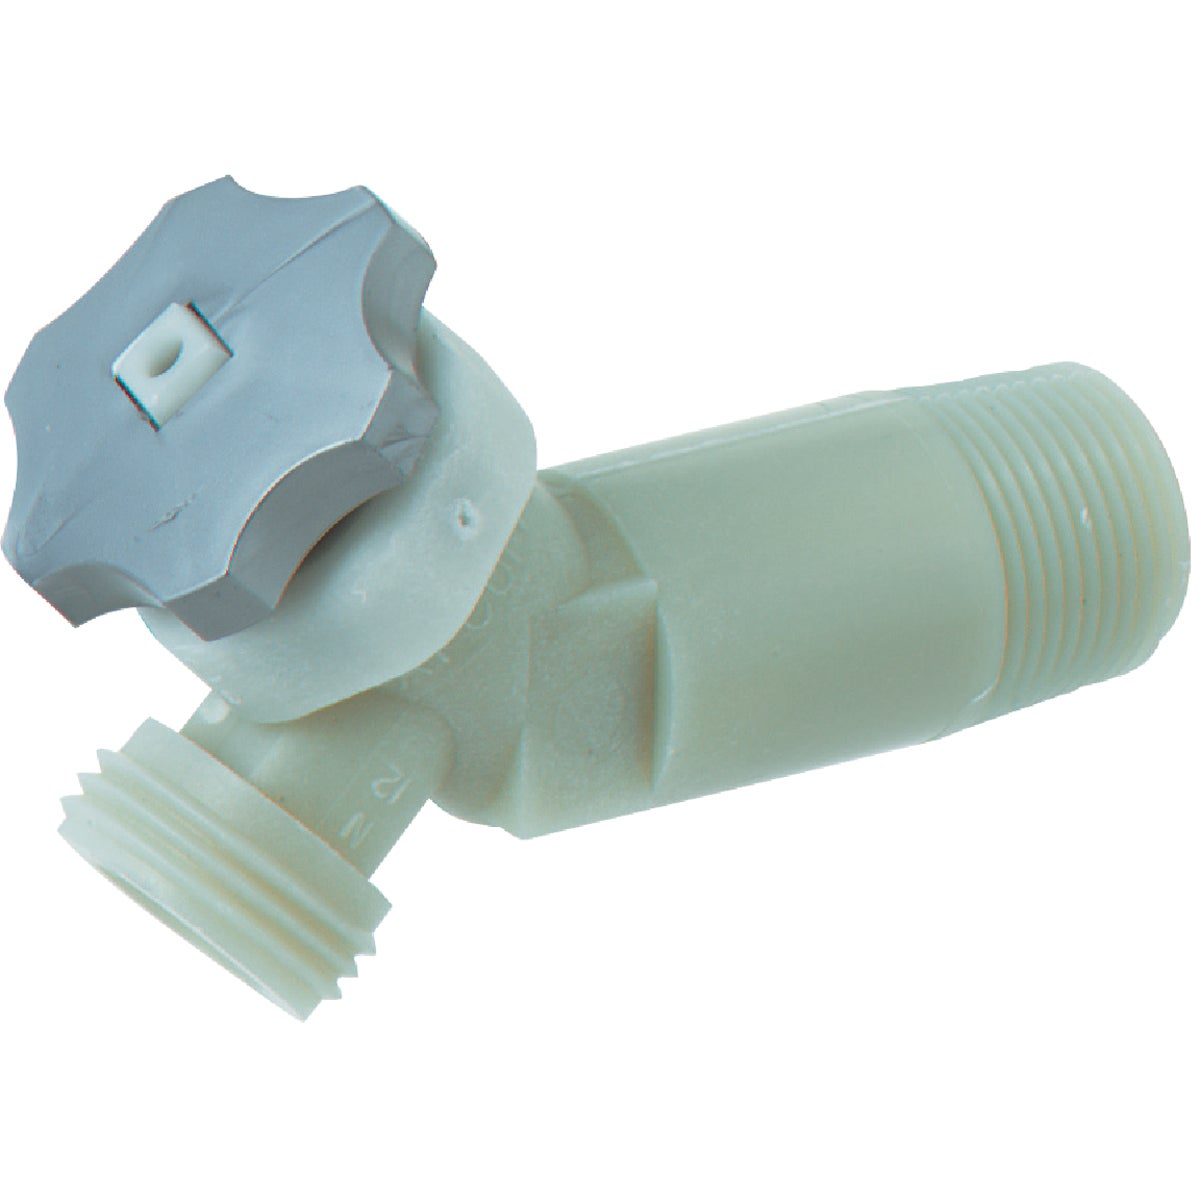 DV2.0 DRAIN VALVE - 9000058 by Reliance State Ind